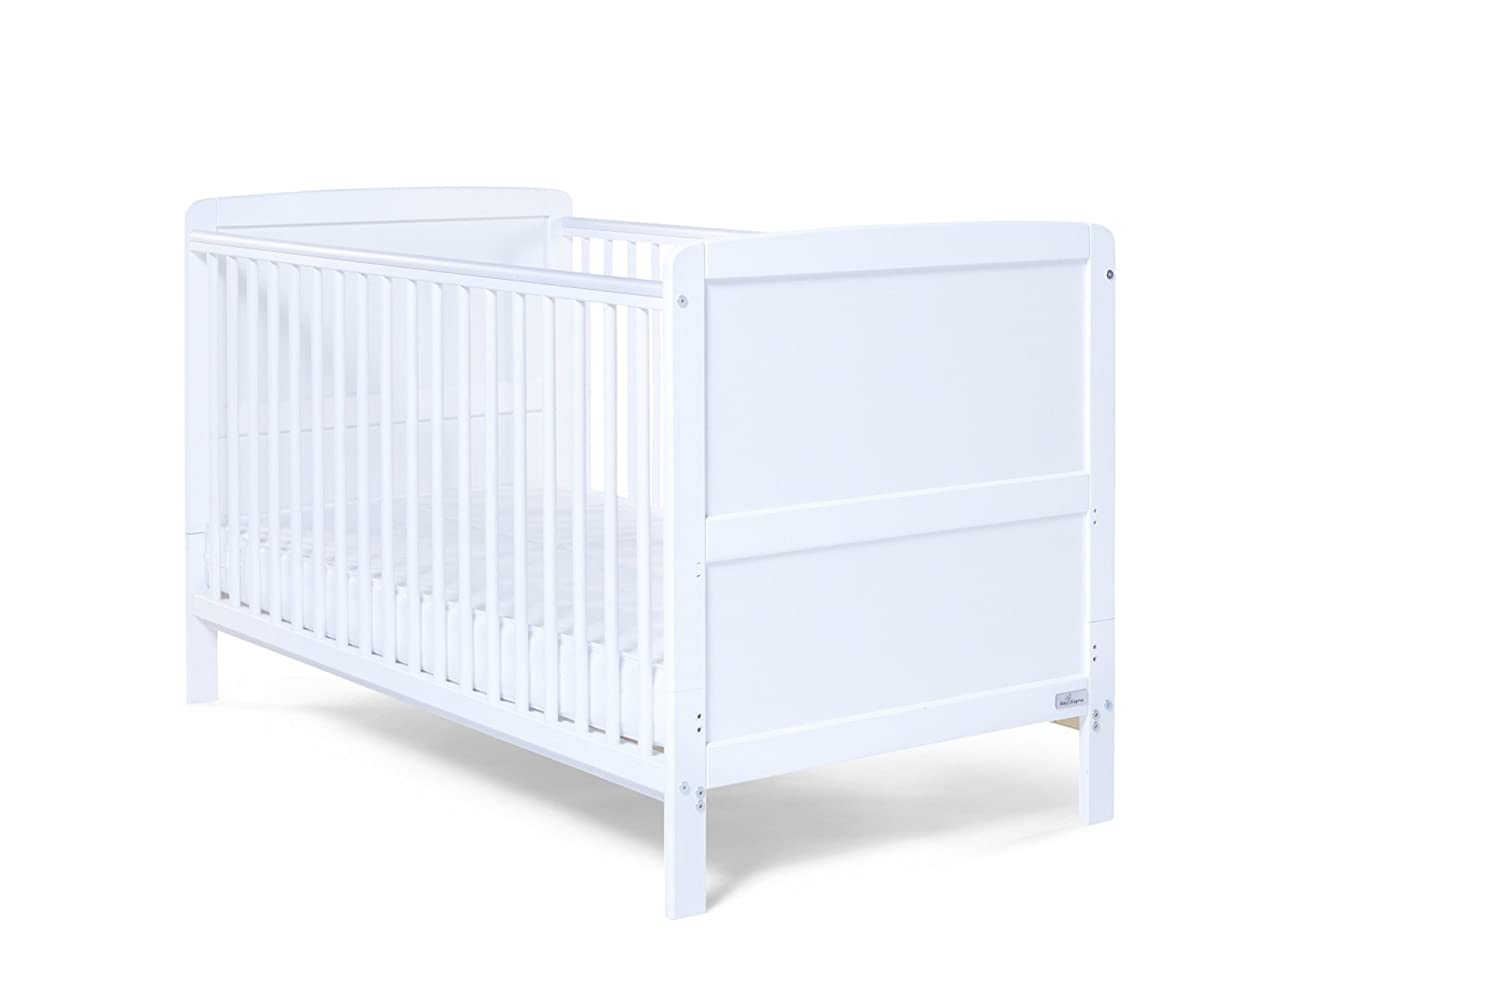 Baby Elegance Travis Cot Bed (White) 1363